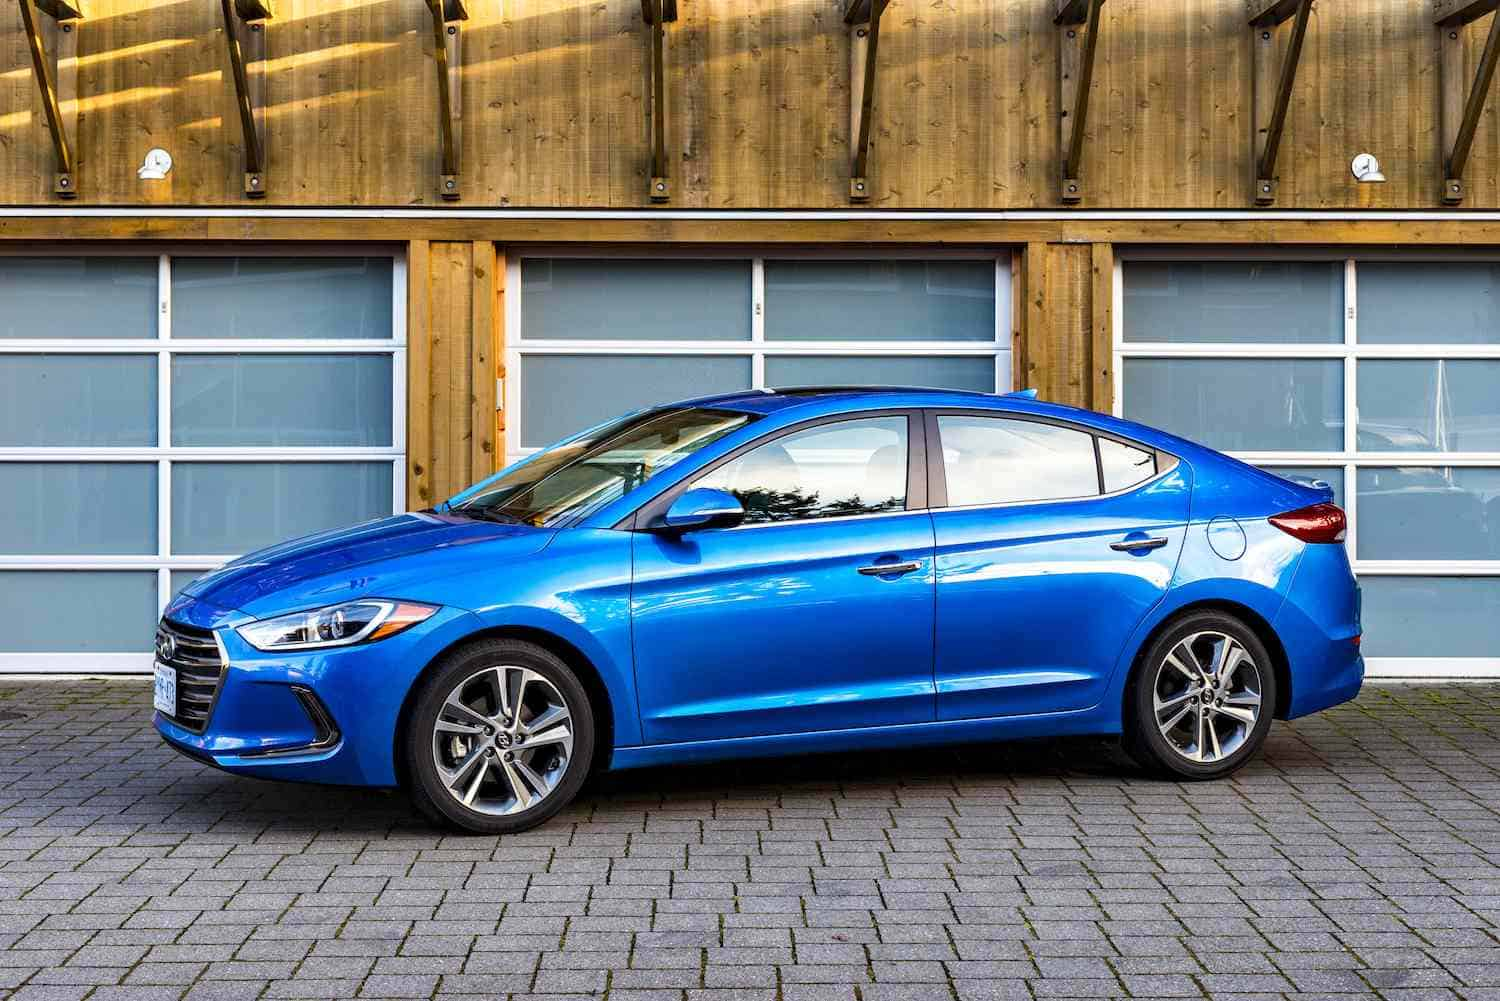 2017-hyundai-elantra-review-1500-1000